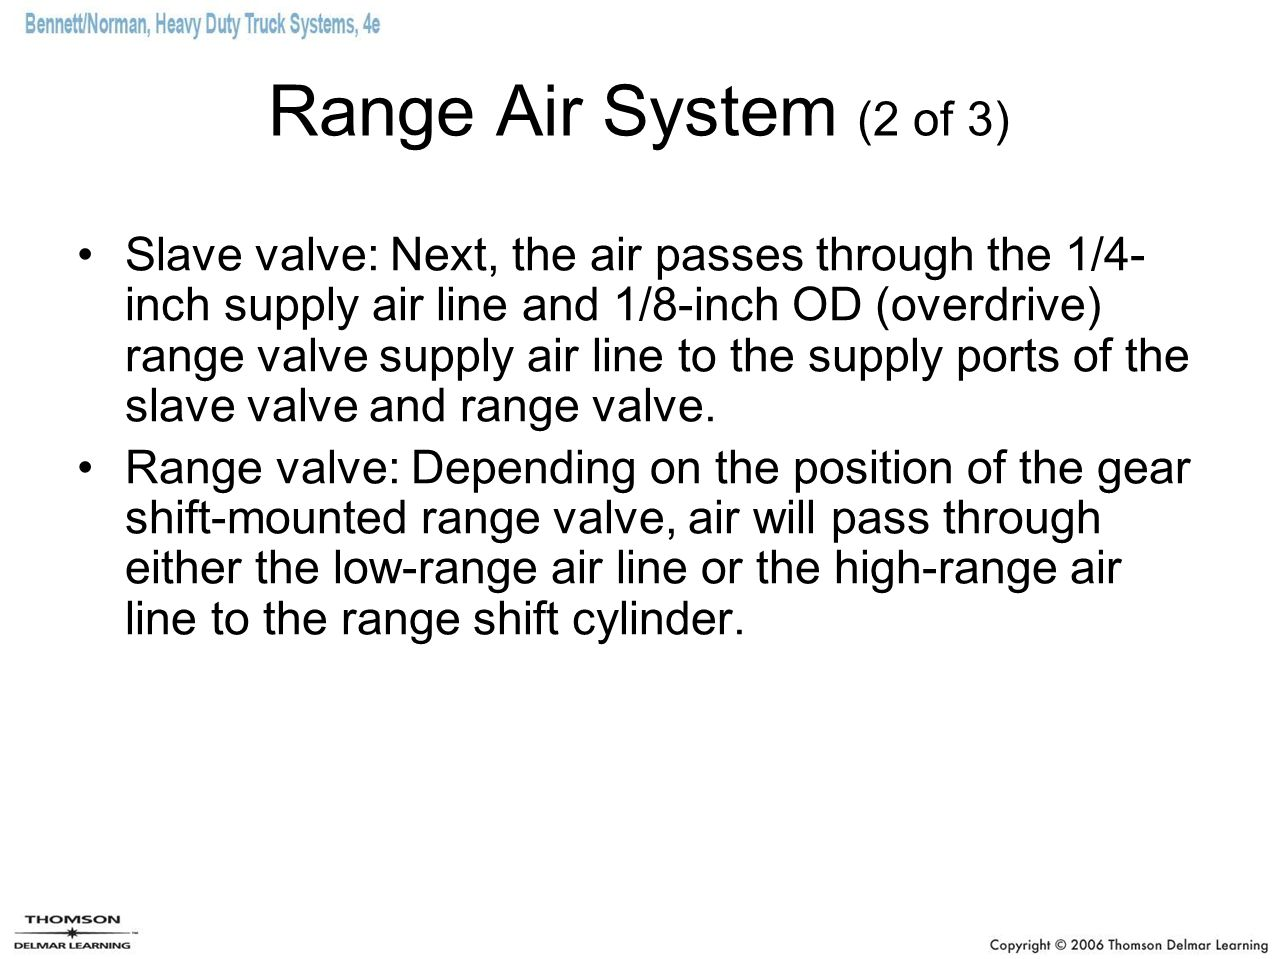 Range Air System (2 of 3)